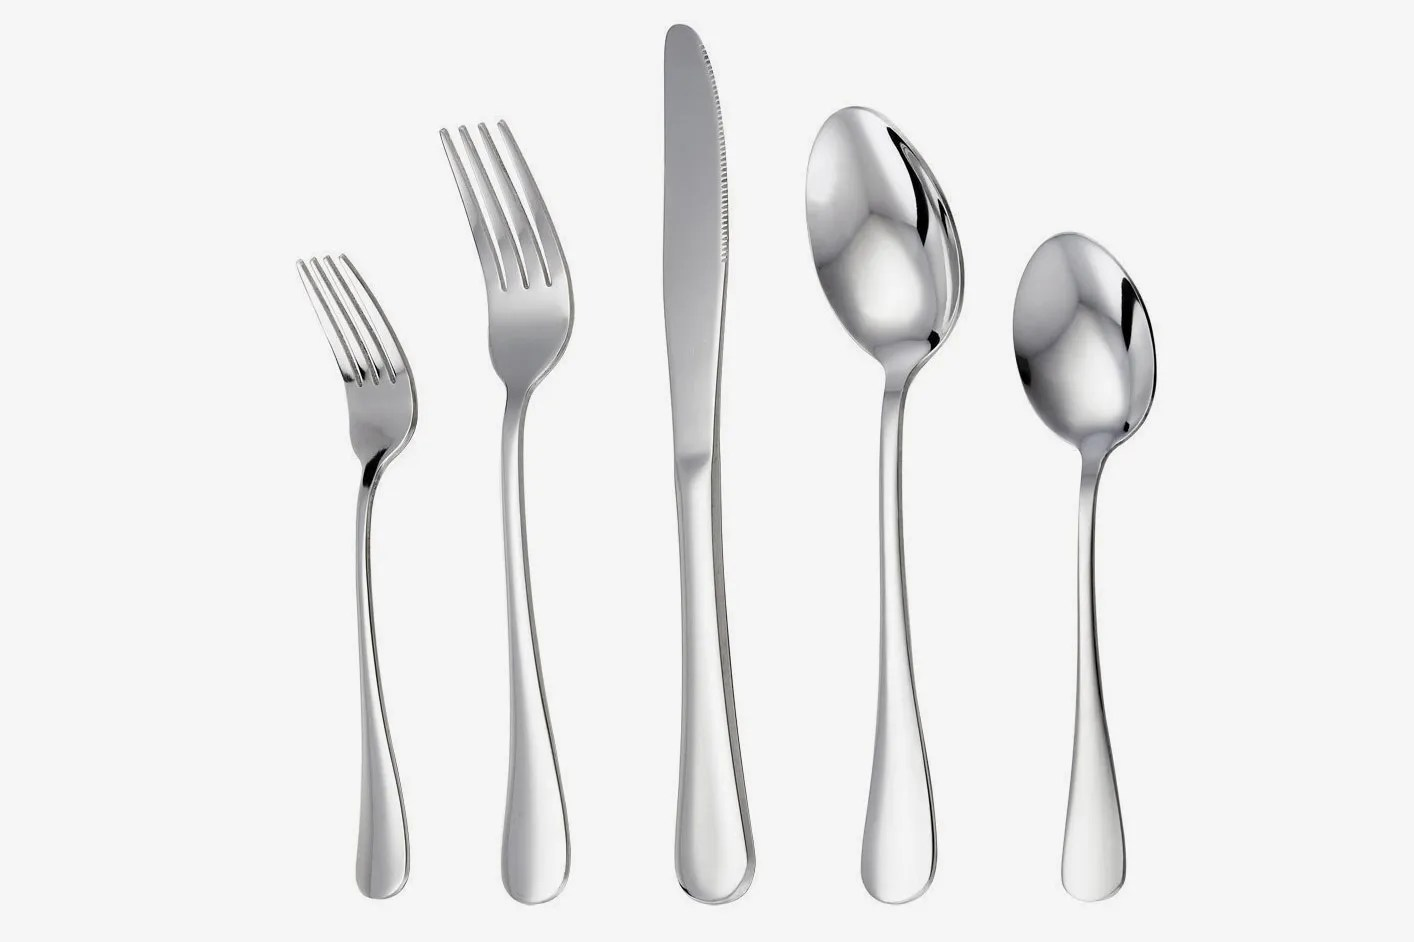 Used Flatware For Sale Lianyu 20 Piece Silverware Flatware Cutlery Set